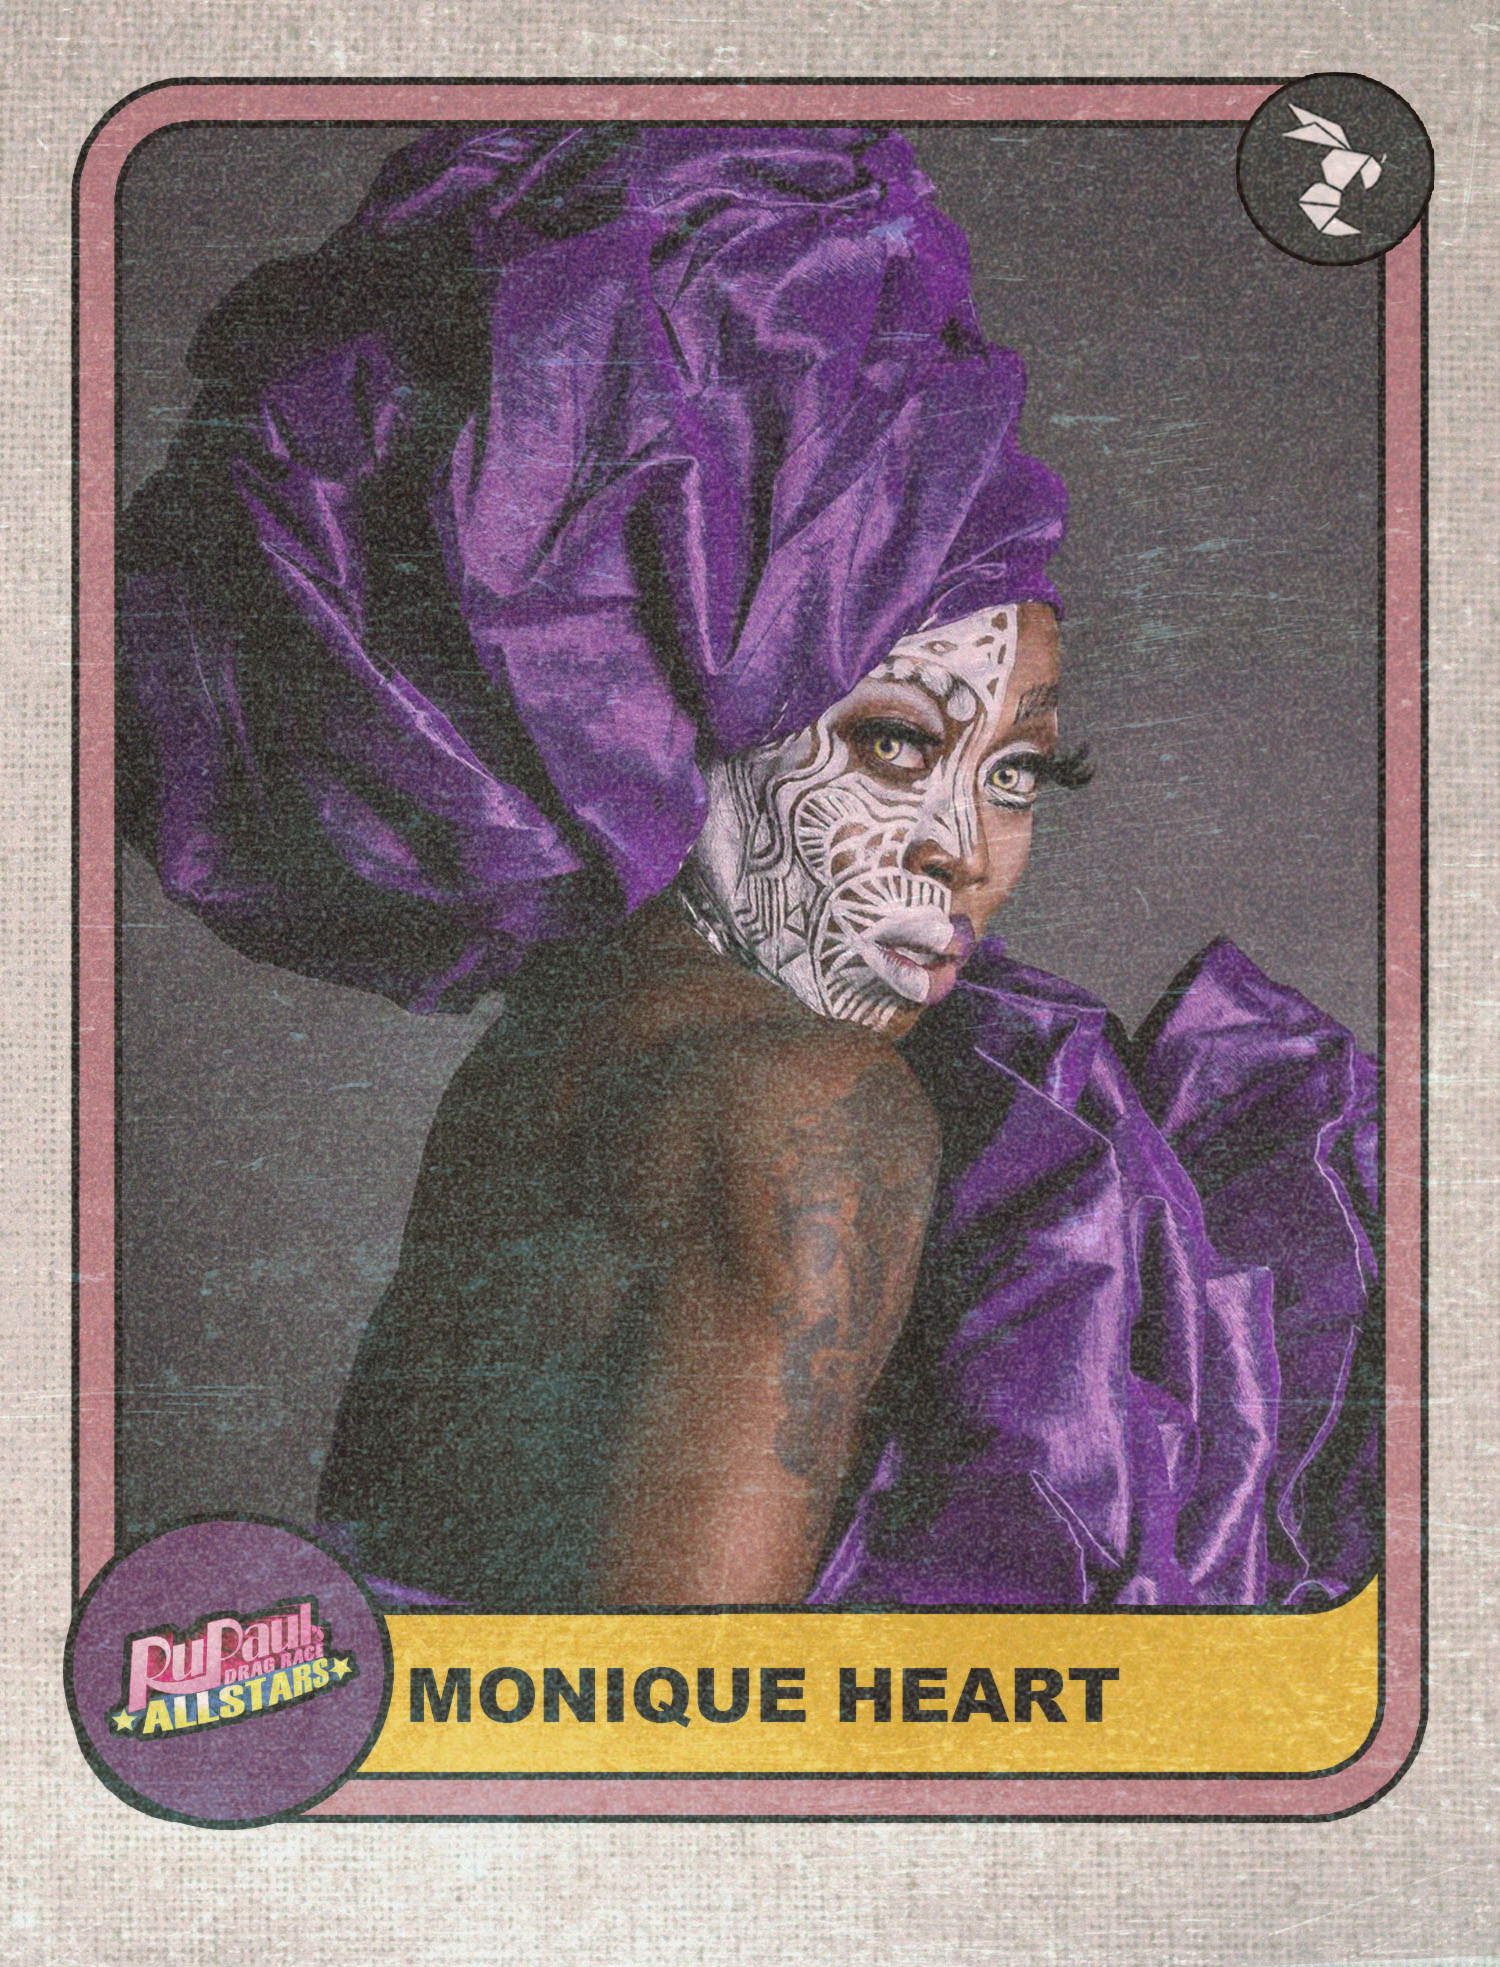 all stars 4 monique heart